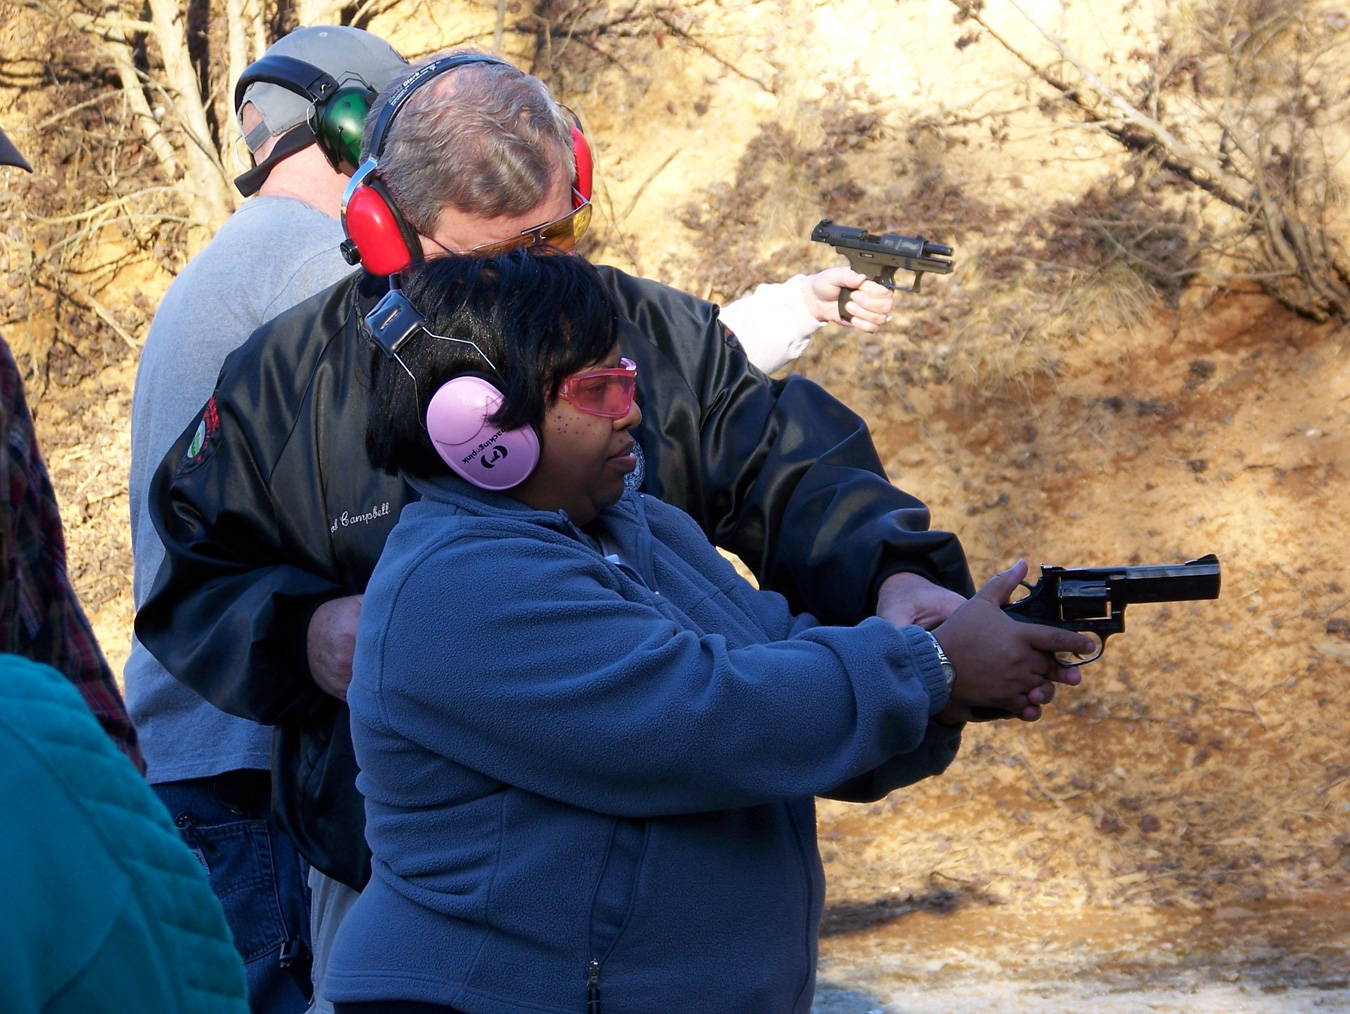 Woman with pink muffs shooting a revolver